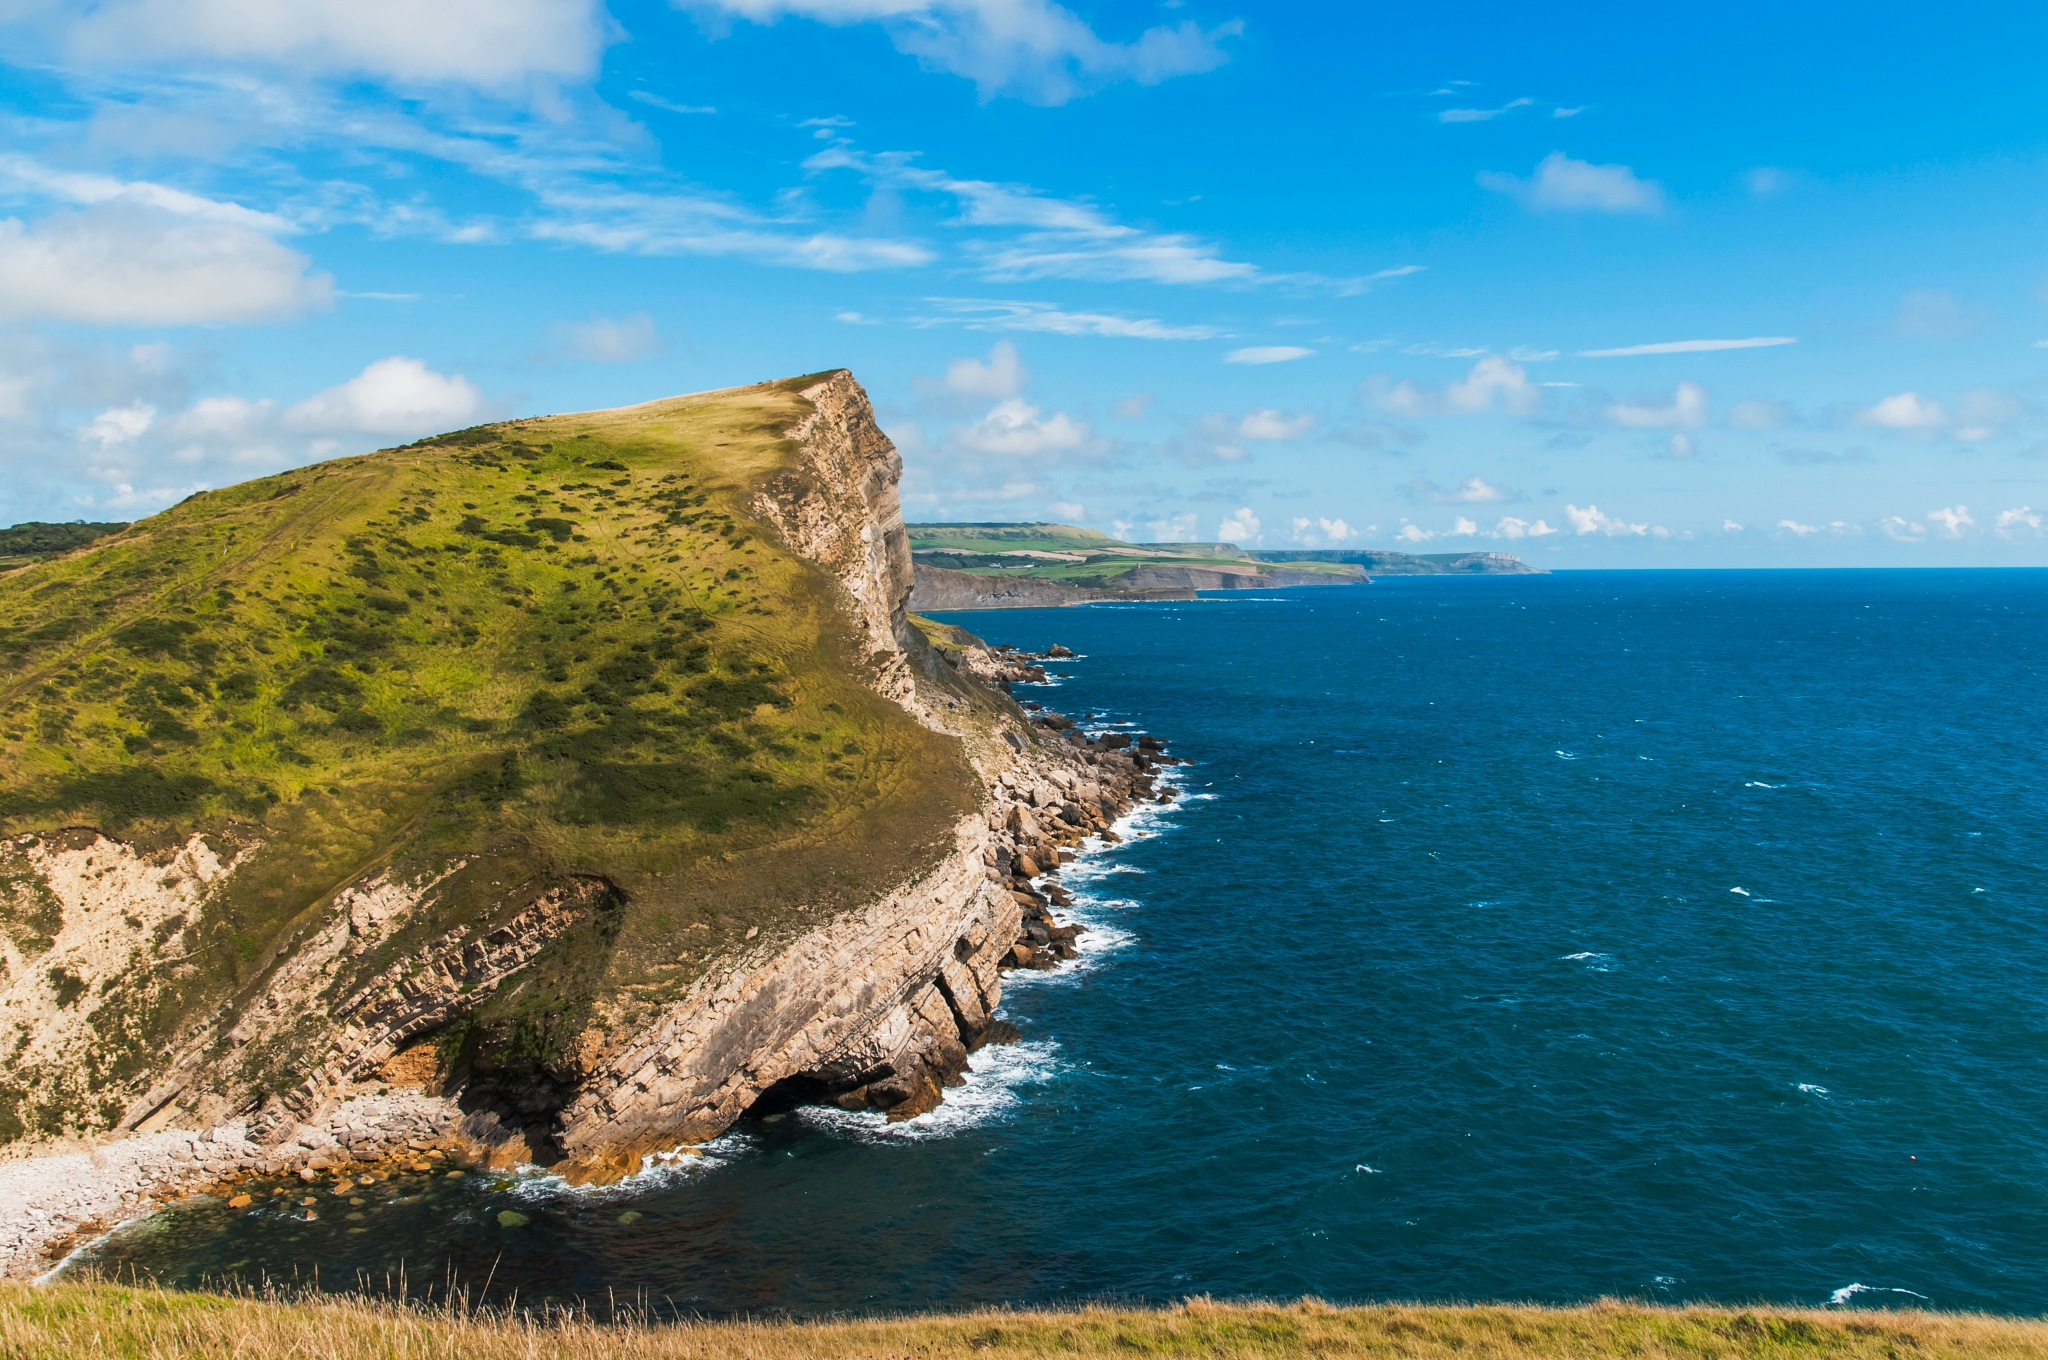 Jurassic coast by Jim Hellier